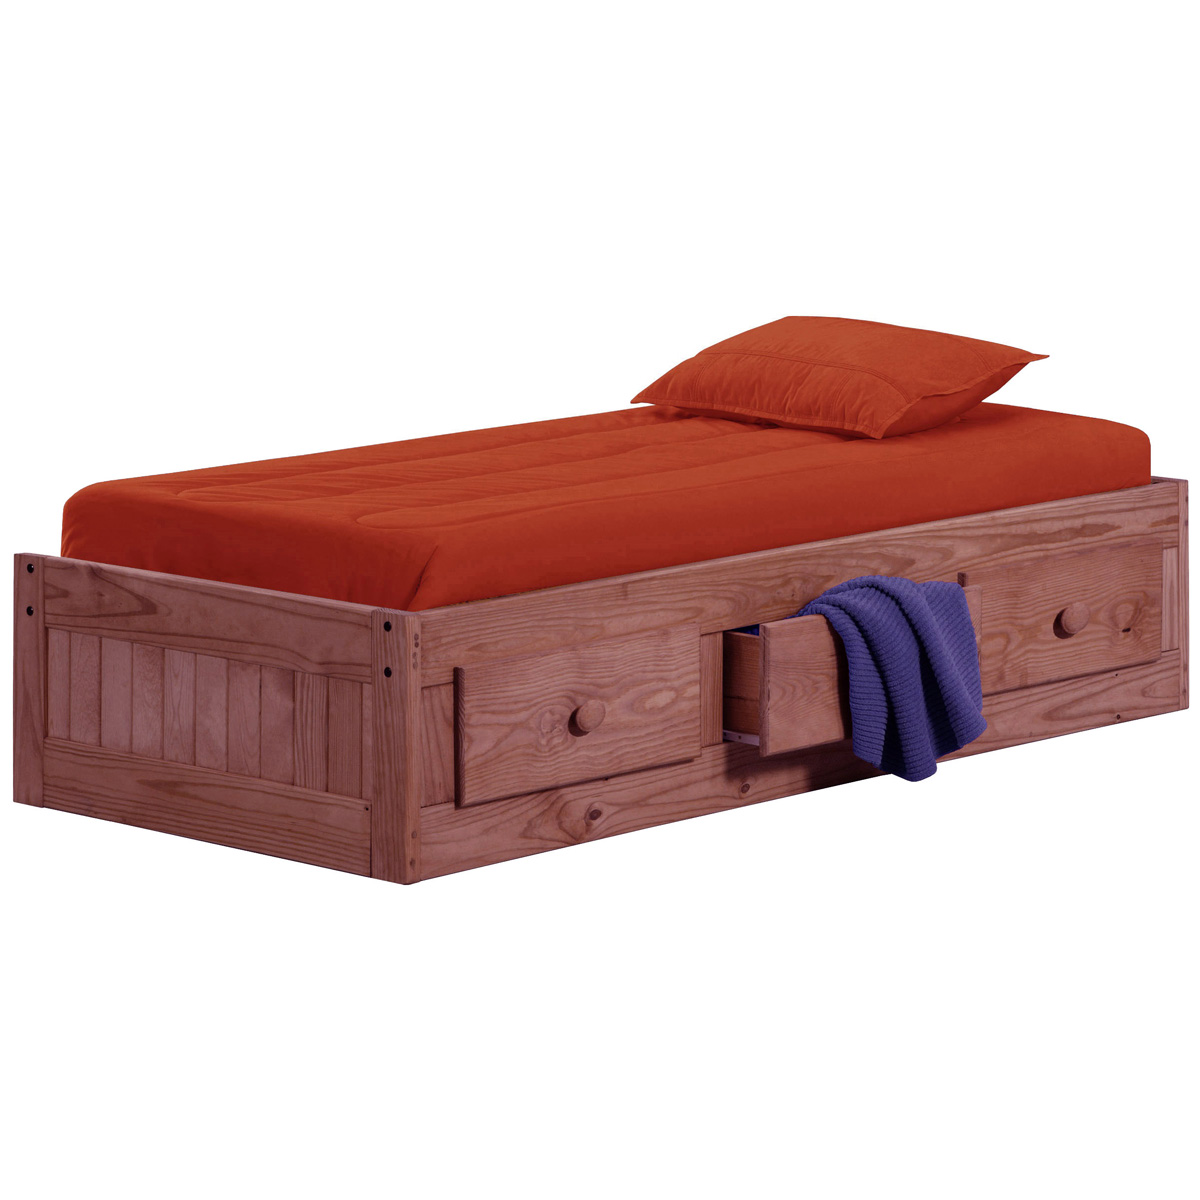 Twin Box Bed Under Bed Storage Mahogany Finish Dcg Stores